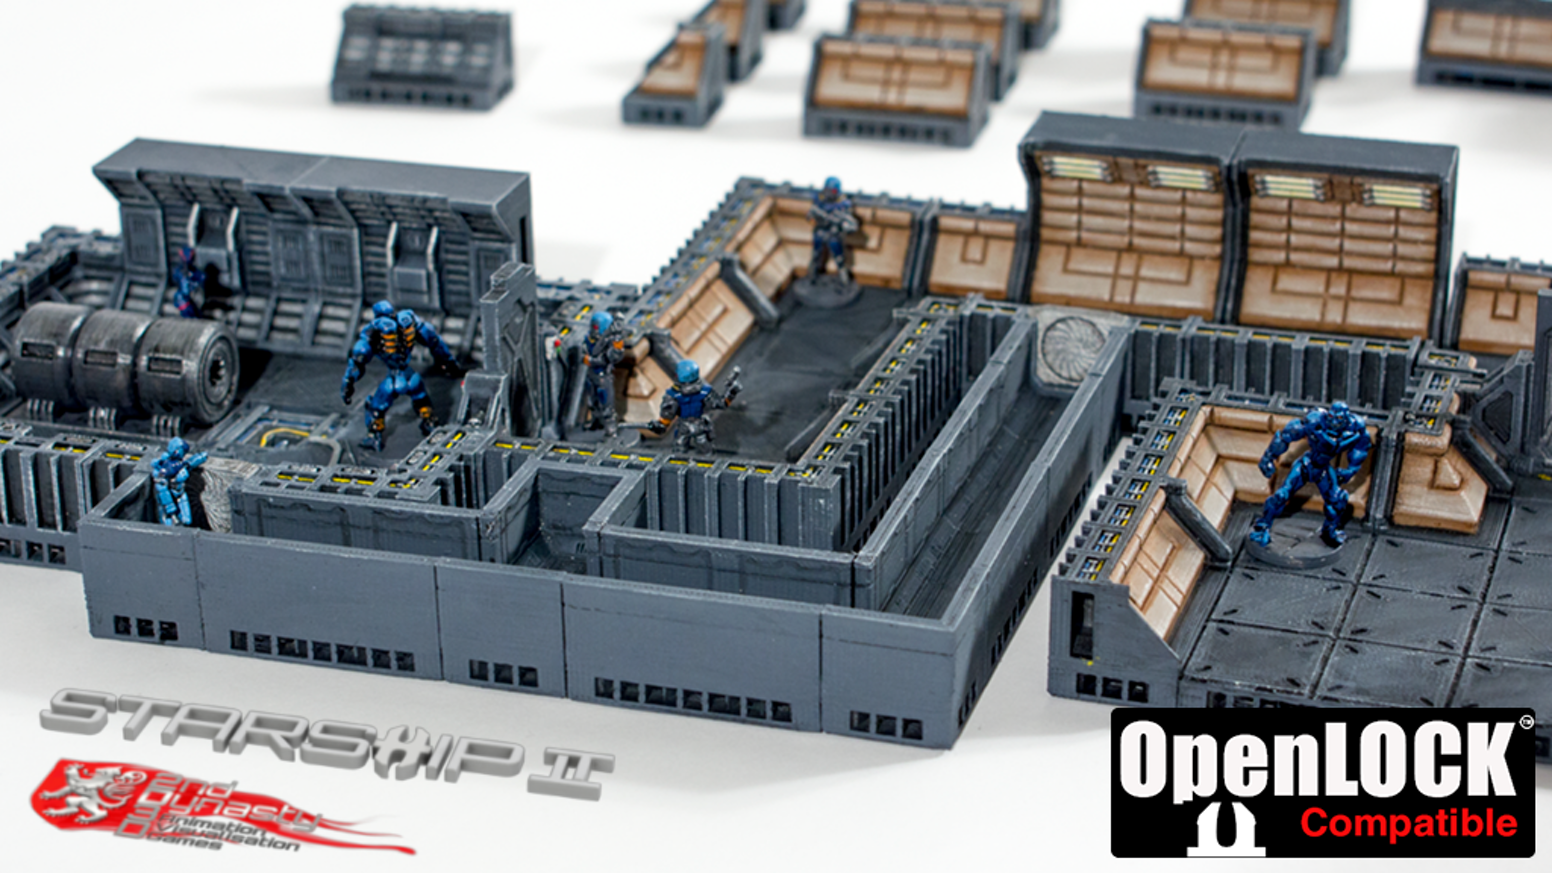 Build your own Starship layout using OpenLOCK-Compatible parts. Ideal for tabletop wargames and RPGs such as Starfinder, etc.